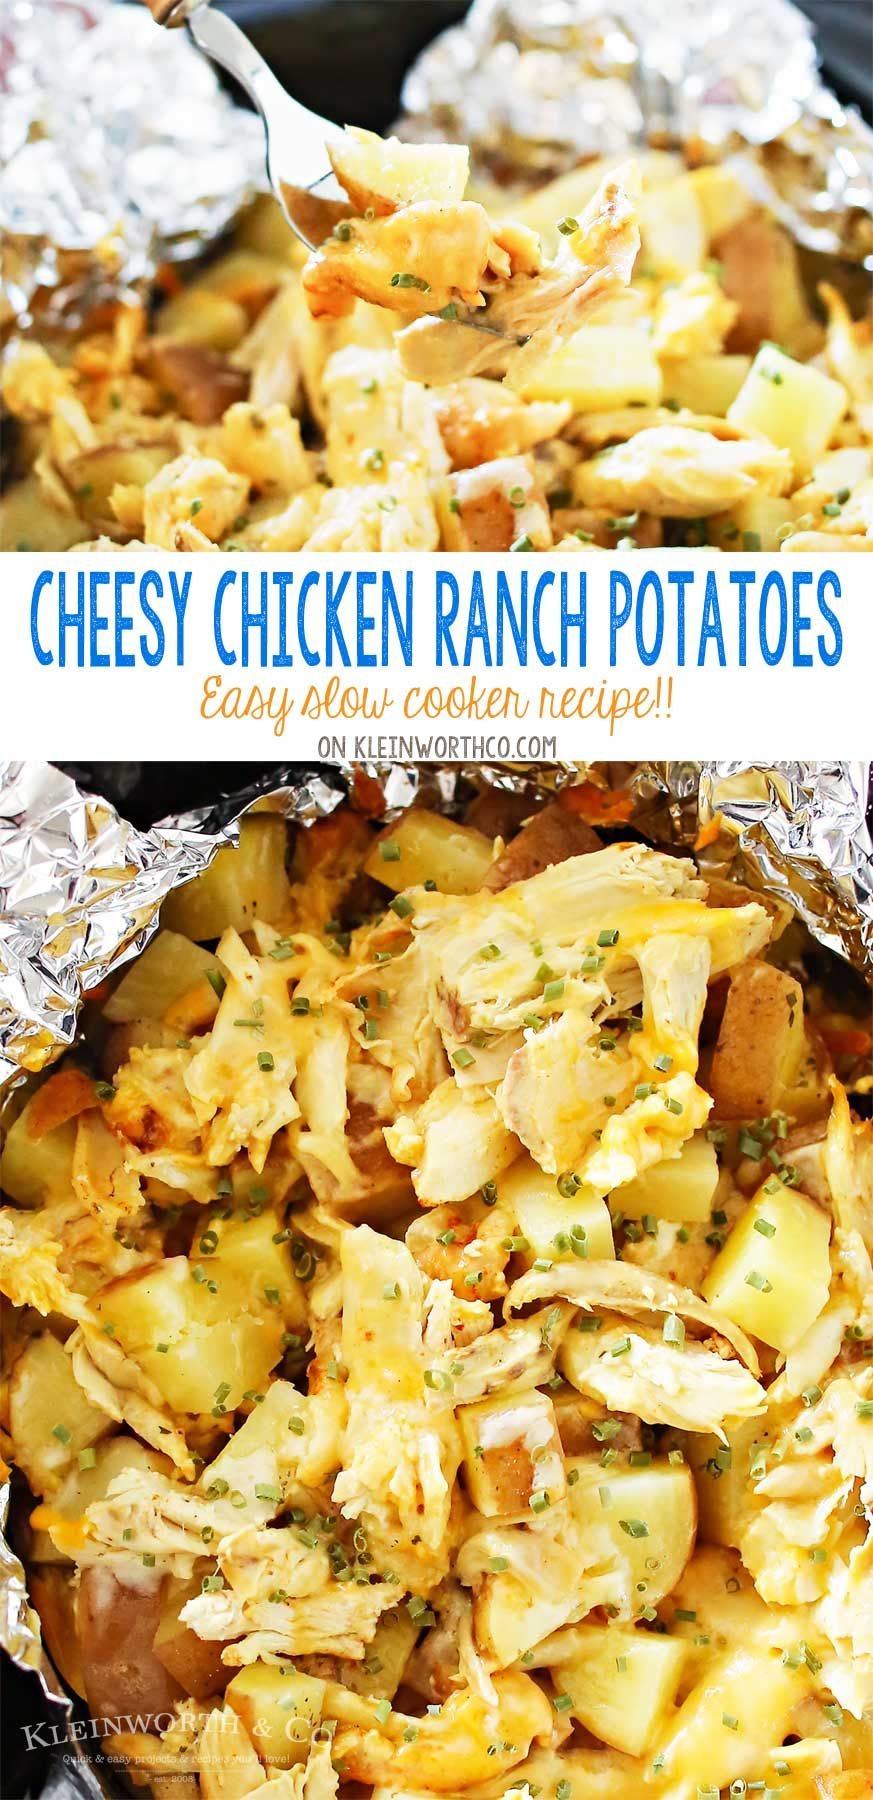 Are You Looking For A Cheap And Easy Weeknight Chicken Meal Idea Using A Rotisserie Chicken To Speed Thi Rotisserie Chicken Recipes Recipes Easy Family Dinners